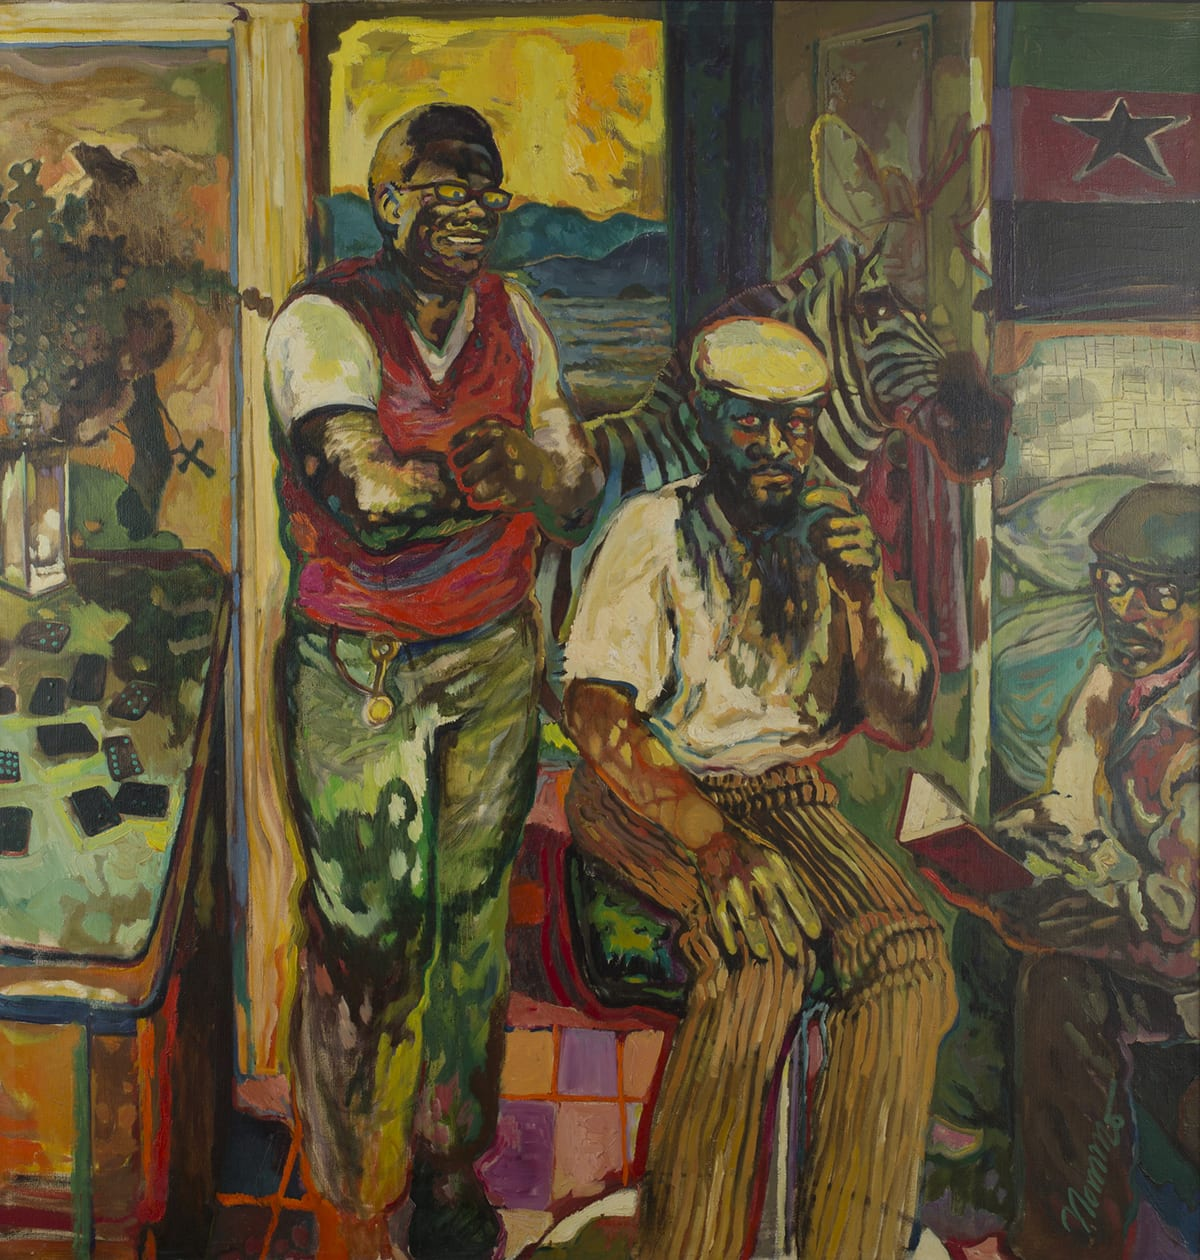 A vertical, rectangular painting showing three African American men. Two of the men are shown in the center of the painting almost filling the height of the work. The figure on the left is standing, arms crossing over his chest. He has dark skin, glasses, short cropped black hair and smiles broadly. He wears a red vest over white short sleeved shirt and greenish pants. To the right is a seated figure with dark skin and a beard. He looks toward the viewer/artist. He wears a light cream, short-sleeved shirt with brown striped pants and a flat cap. His hand at left rests on his knee and his hand at right raised near his chin. To the far right sits another dark-skinned man, sitting on the edge of a bed while appearing to read from a red book. This figure wears glasses, a flat cap and has a beard. He wears a tan and brown jacket and brown pants. There are pillows and blankets behind him. A green, red, and black striped Pan African flag with a black star hangs over the bed at upper right. At far left of the work is a table with dominoes scattered on top along with a flower filled vase. Behind the two central figures is a zebra; part of the head and ears of the animal is depicted in red outline only and is transparent. The neck and upper torso are fully rendered in black and white stripes. Behind the zebra is an open door showing a landscape of water and mountains and a golden yellow sky. The artist uses many colors to depict each shade sometimes combining complementary colors and layering and blending color to create a mottled or variegated effect. Red brushstrokes outline many of the details such as the zebra, the men's arms, the table and a pair of glasses.